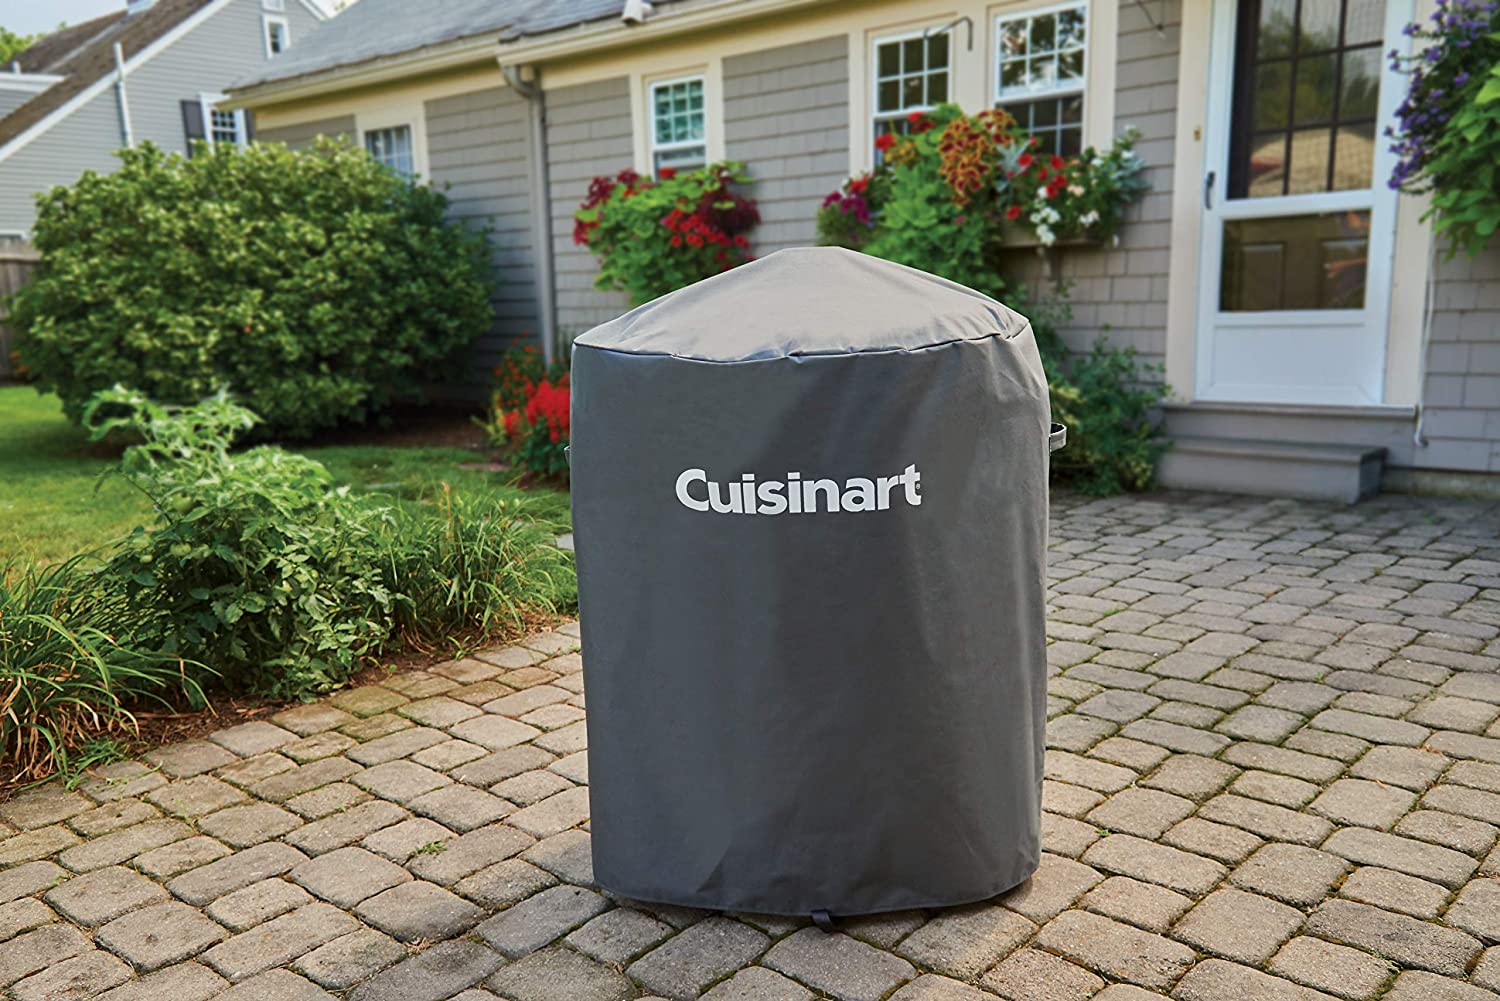 Amazon.com: Cuisinart CGWM-003 360° Griddle Cooking Center ...